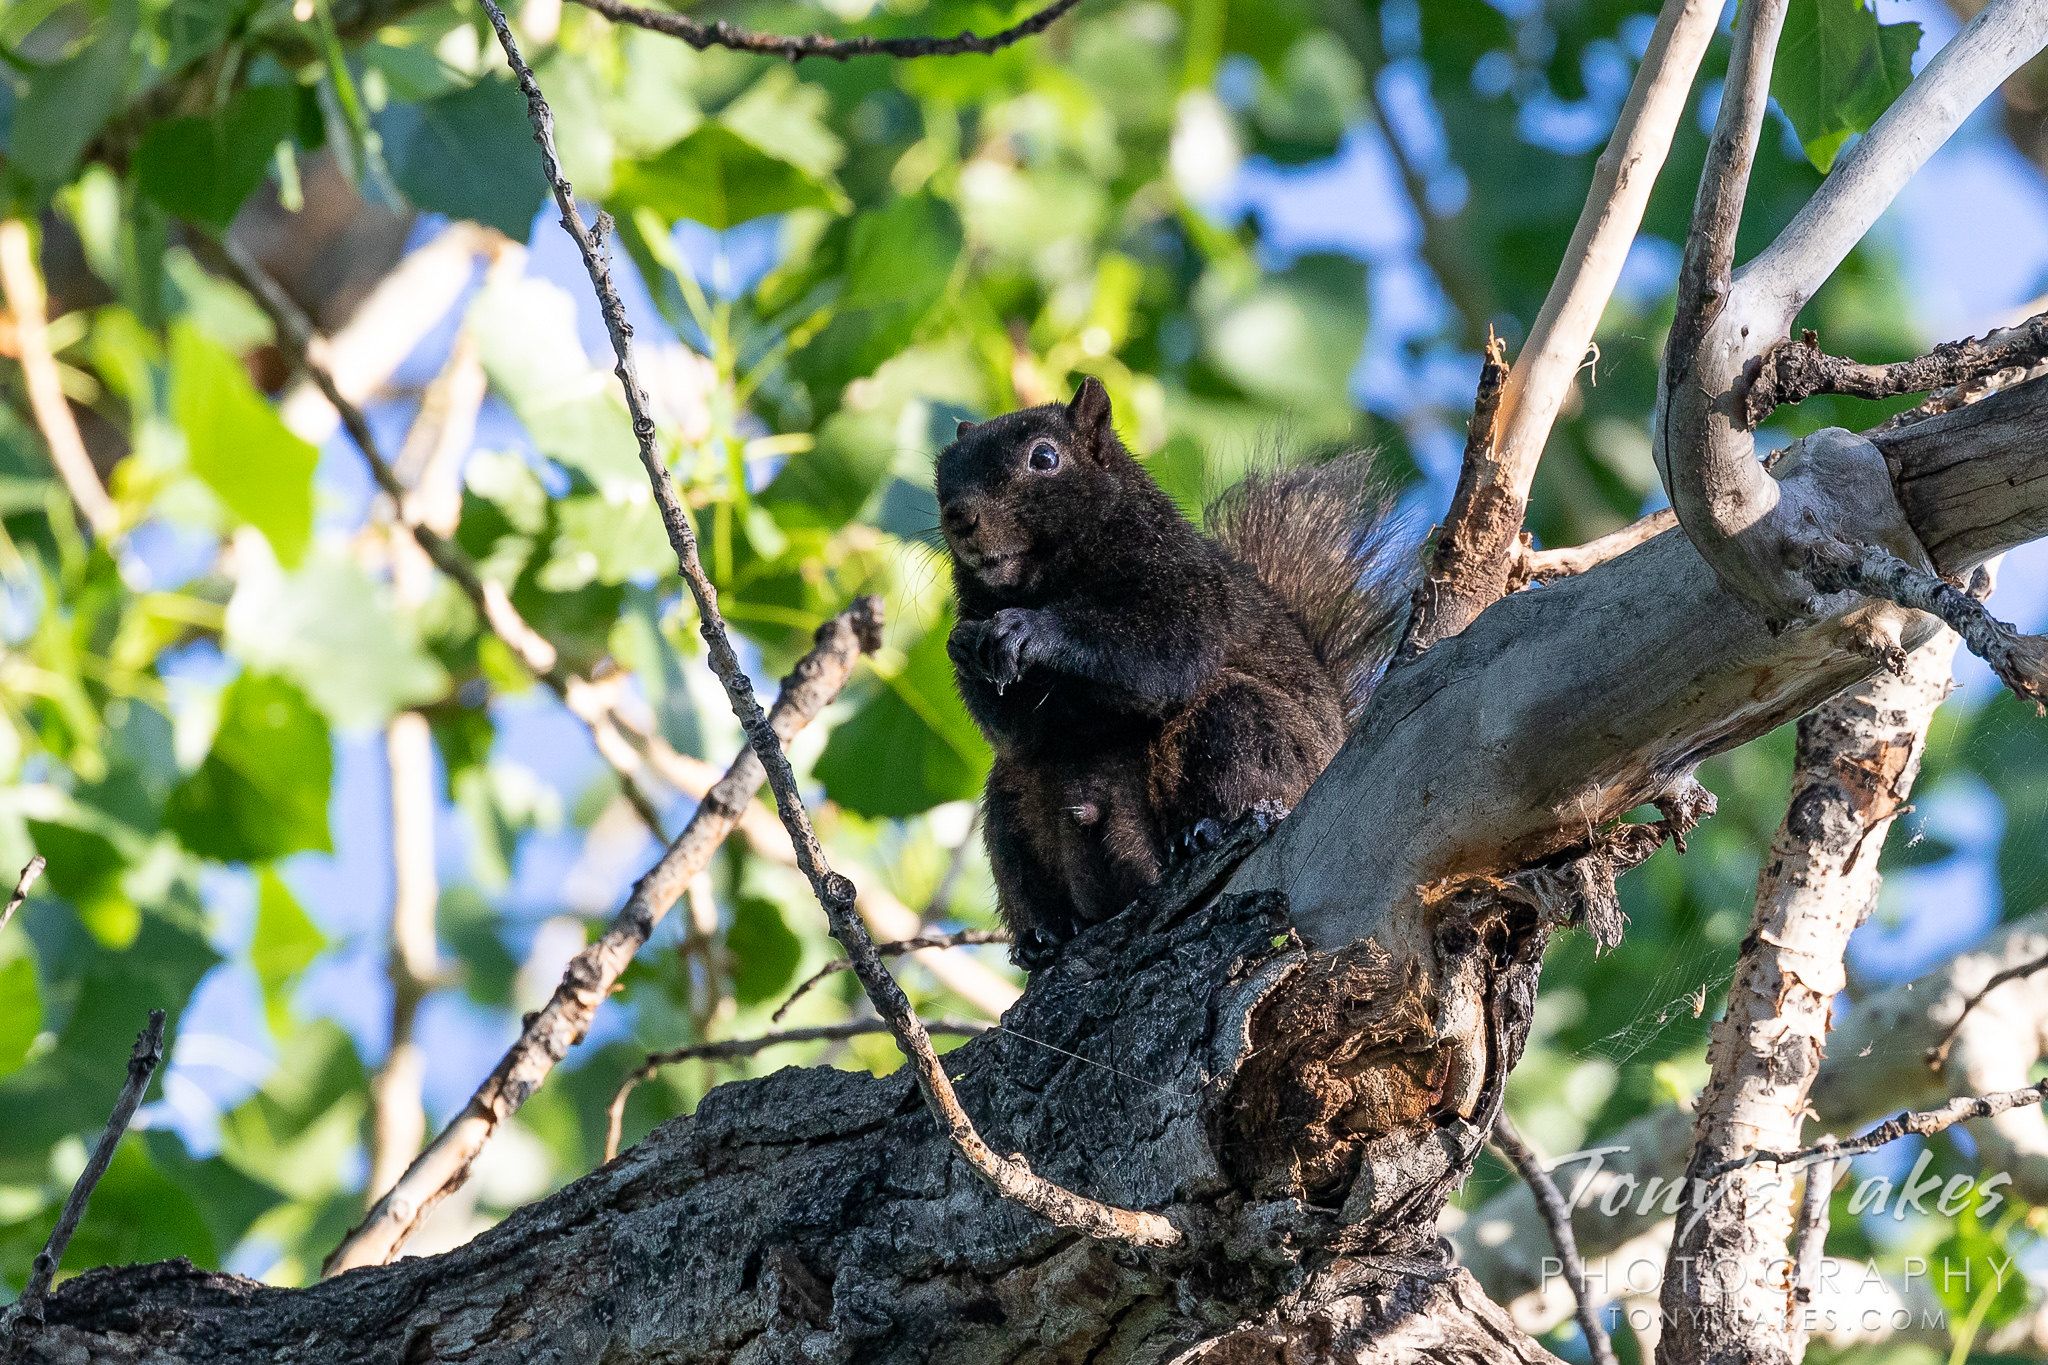 A black squirrel hangs out in a tree in a suburban park. (© Tony's Takes)